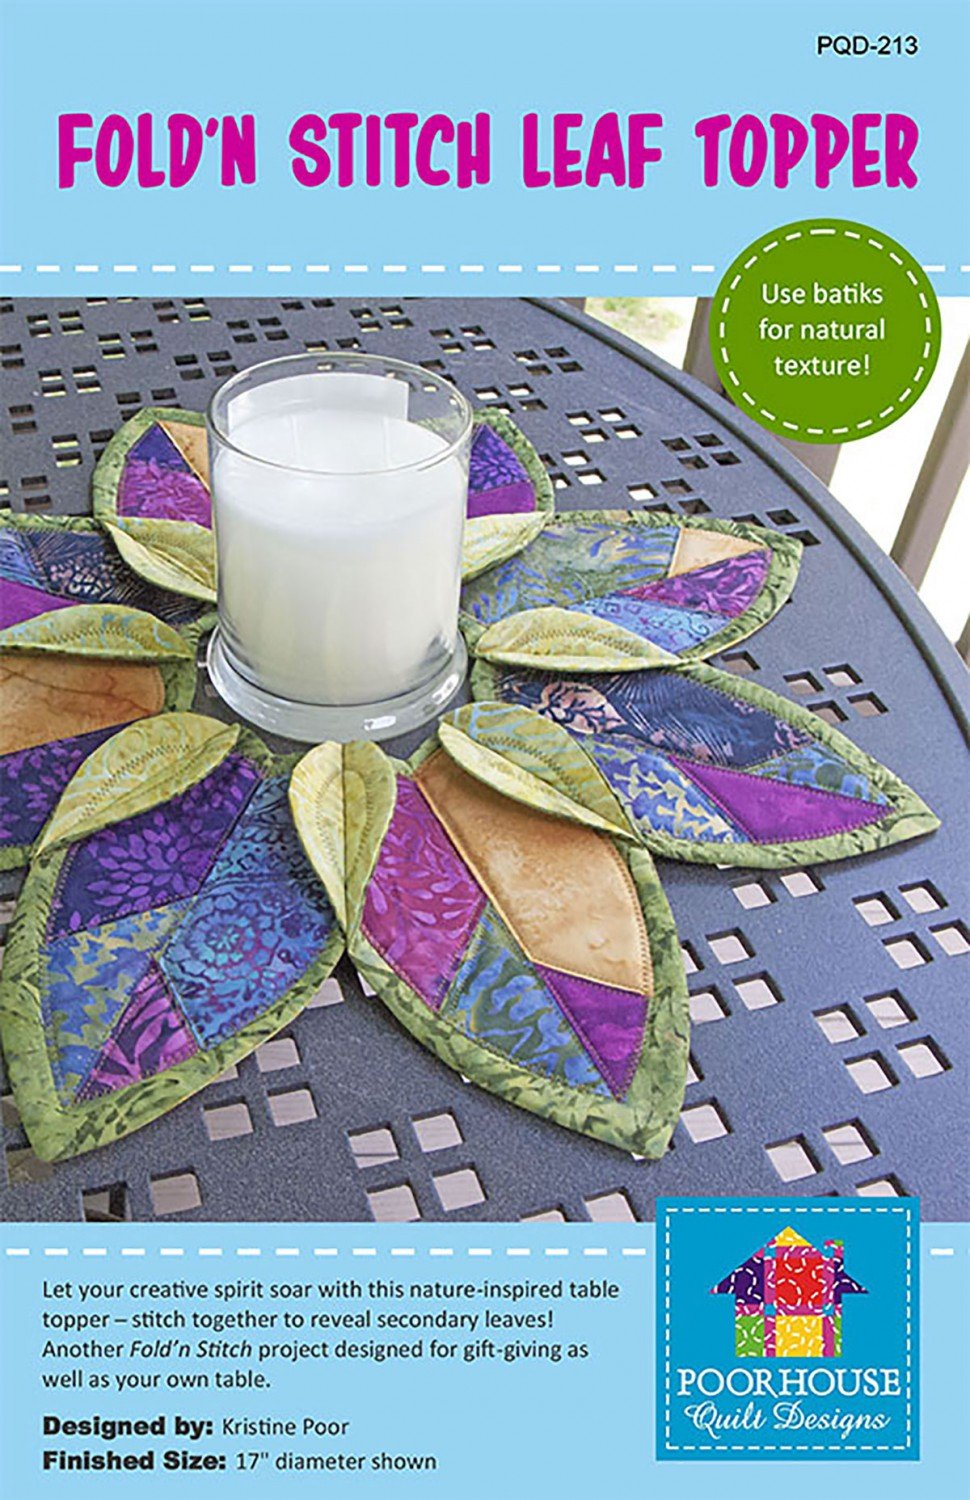 Fold'n Stitch Leaf Topper